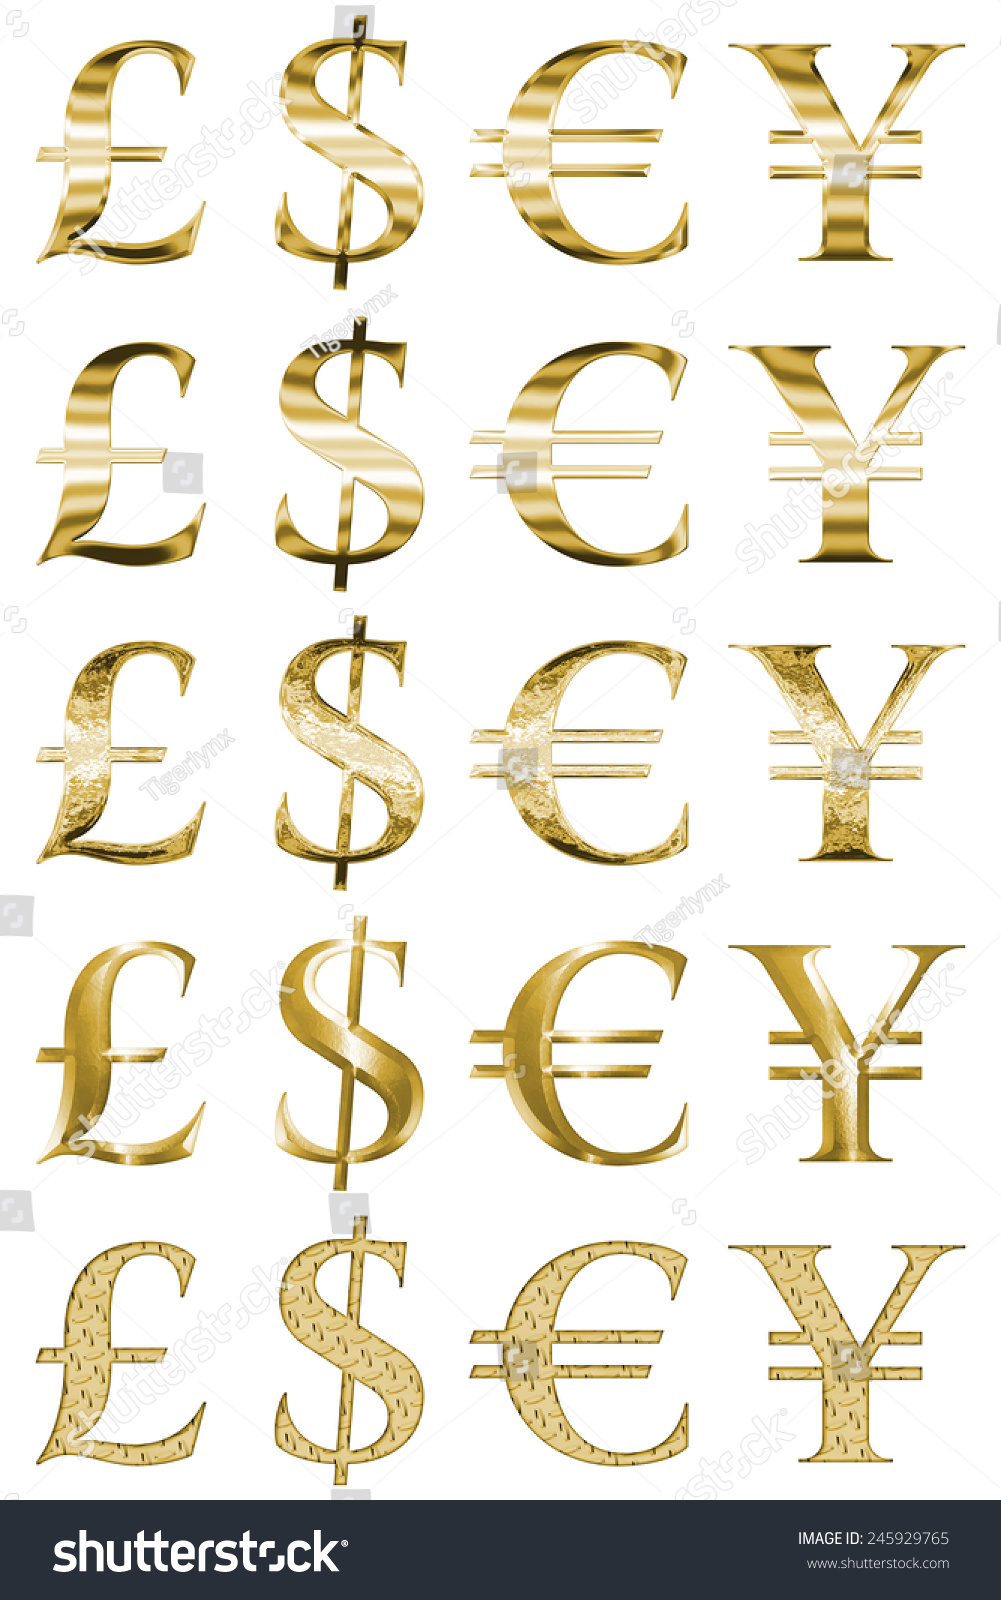 Set 20 Currency Money Symbols Gold Stock Illustration Royalty Free